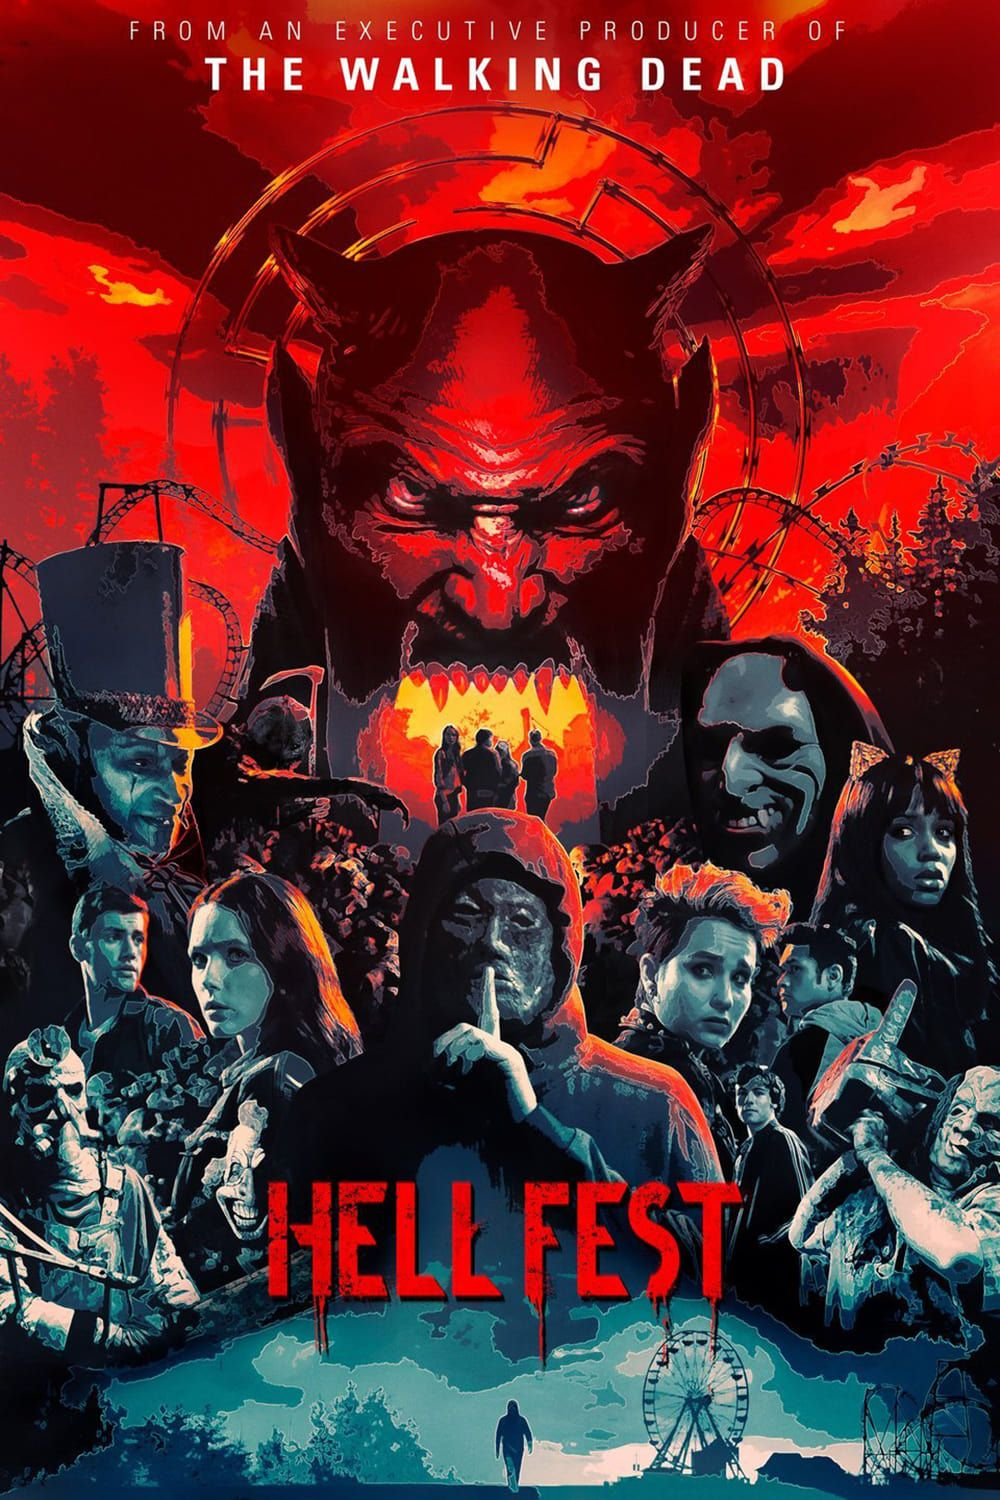 FOX ACTION MOVIES: HELL FEST